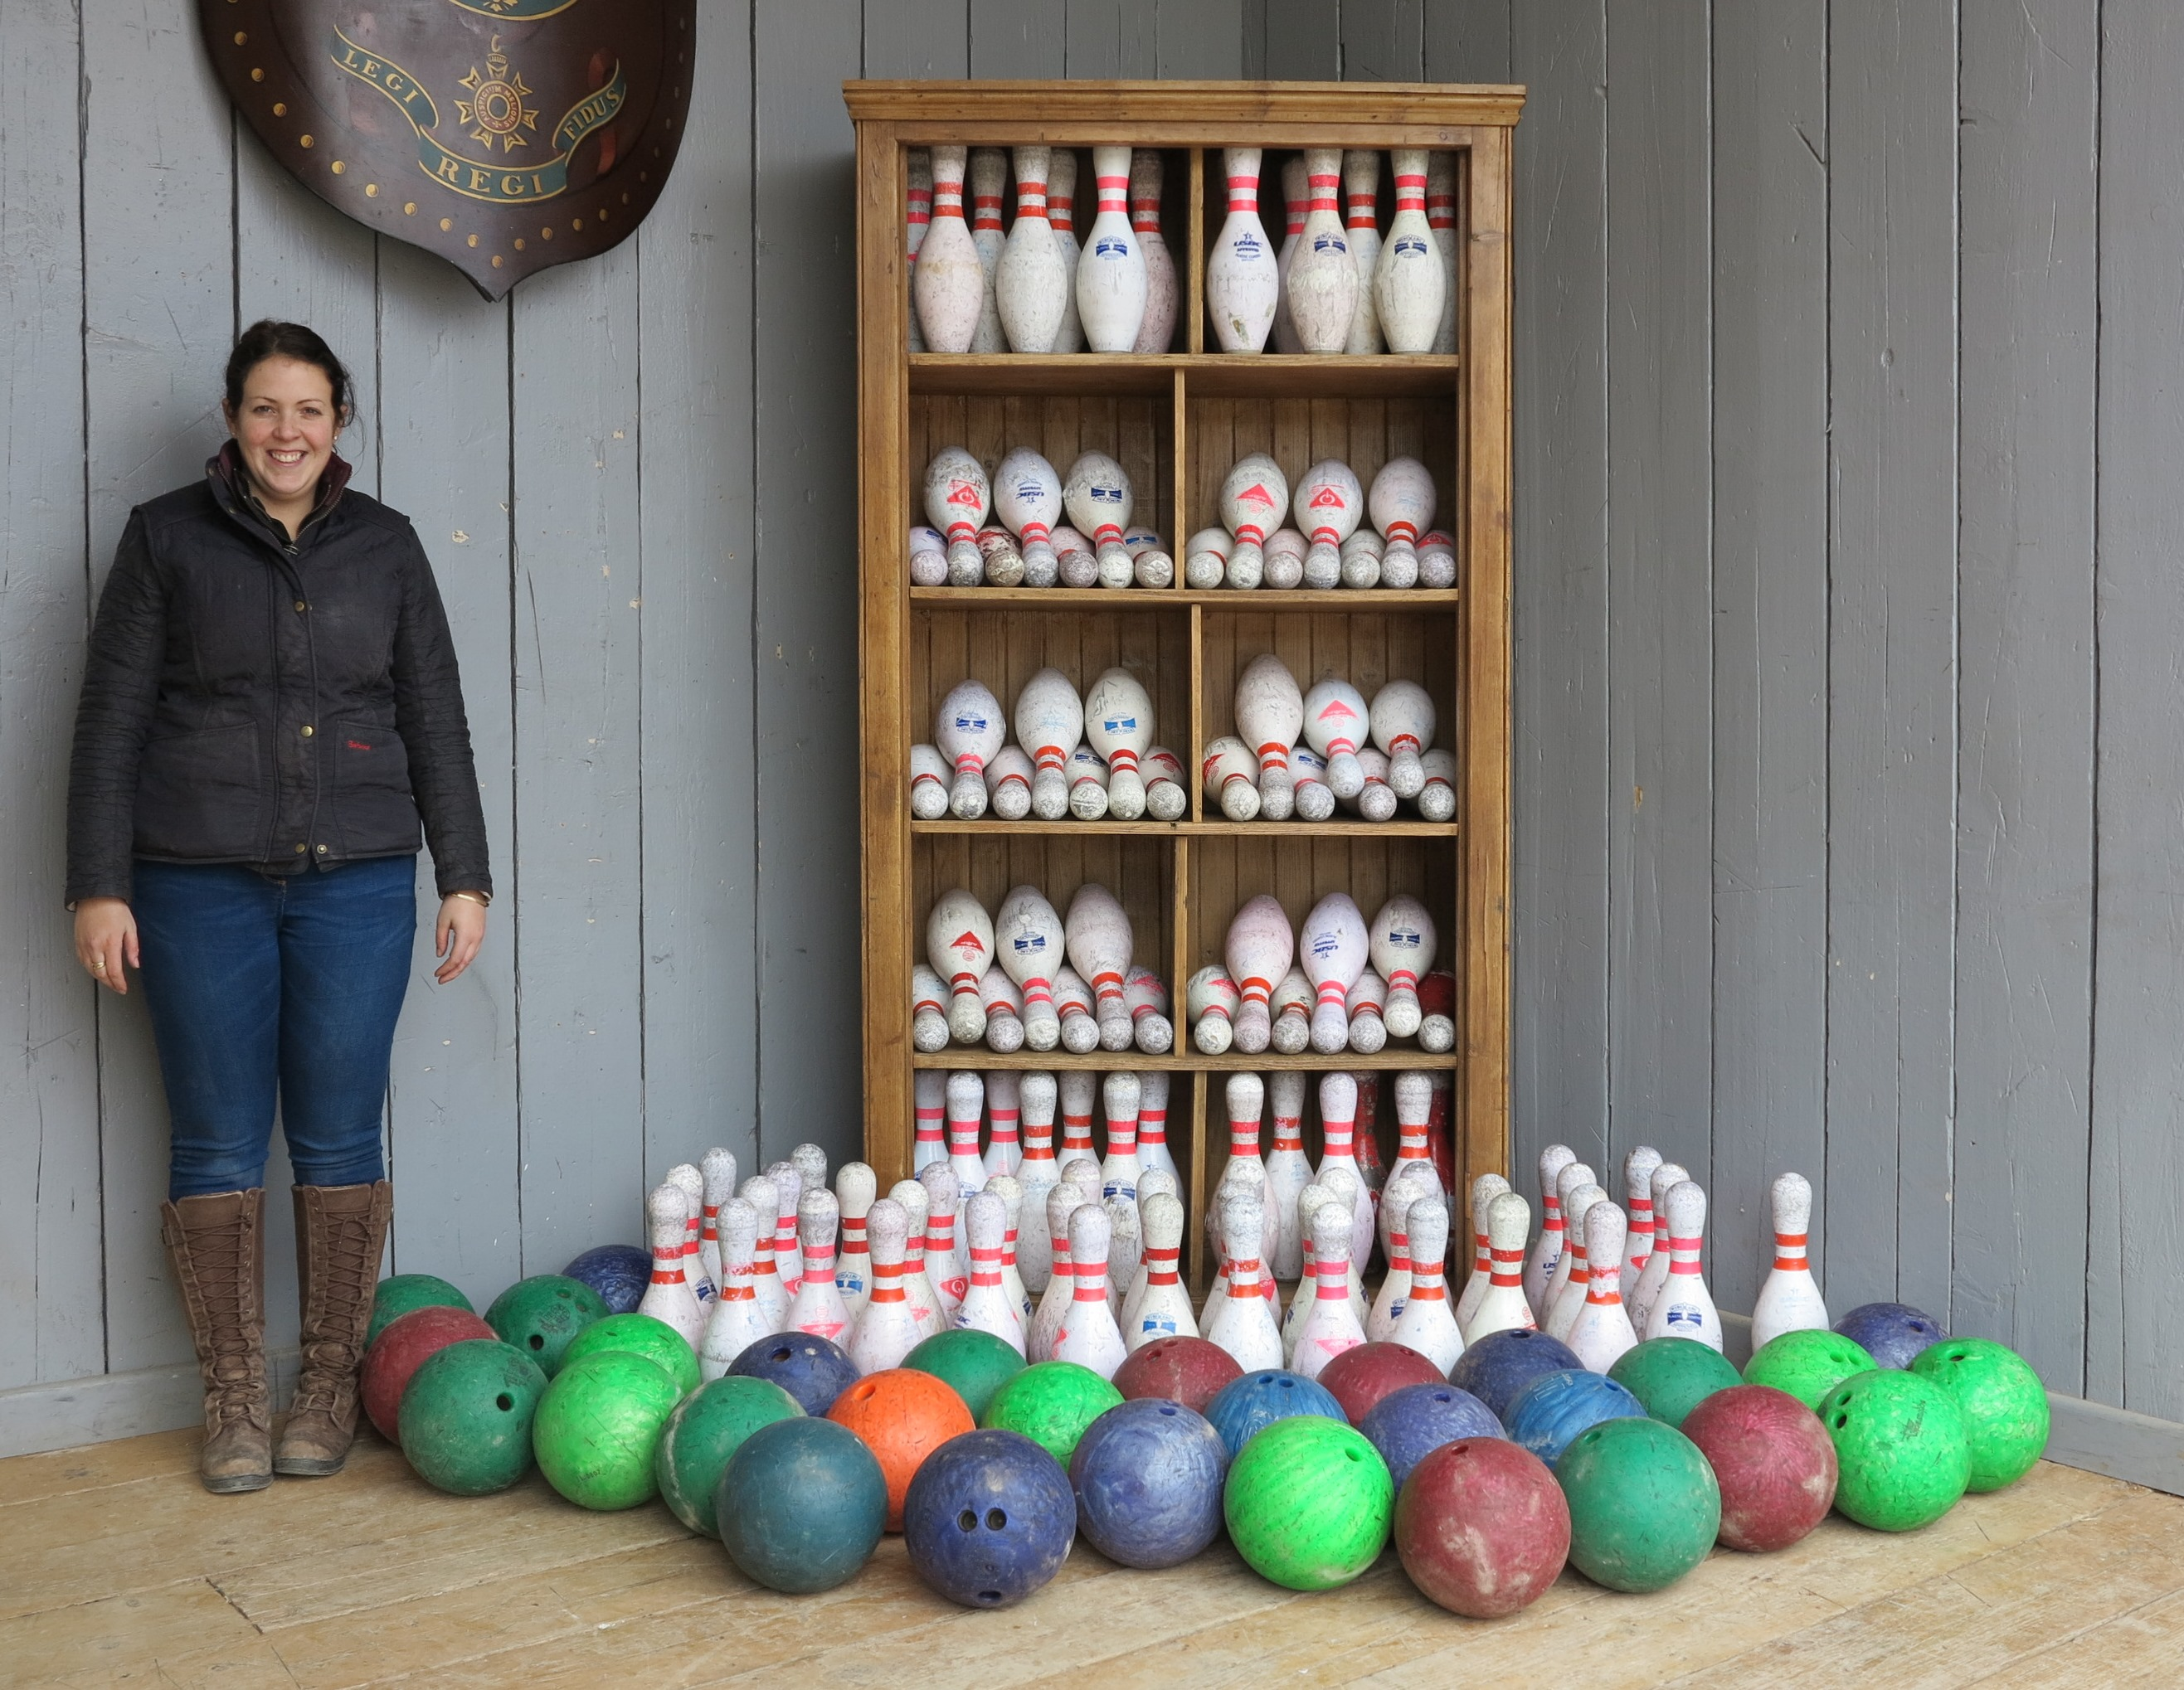 reclaimed original and vintage skittles and bowling balls for sale at UKAA. Circa 1970 from a reclaimed bowling alley.